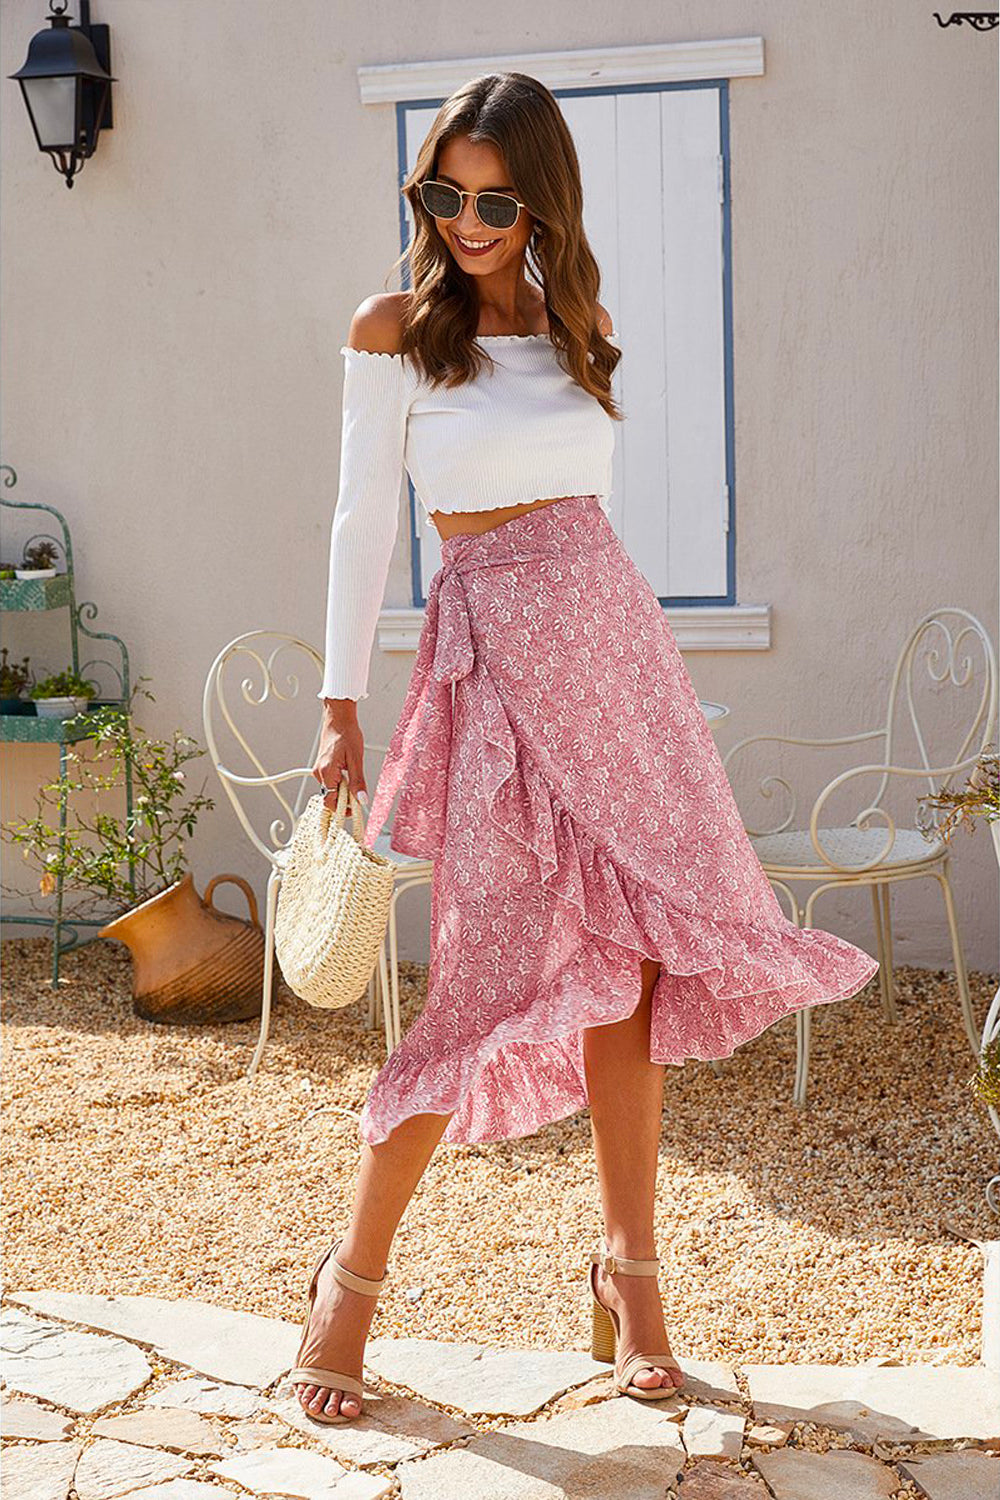 Lora High Waist Floral Ruffle Skirt Pink - Fashion Movements skirts